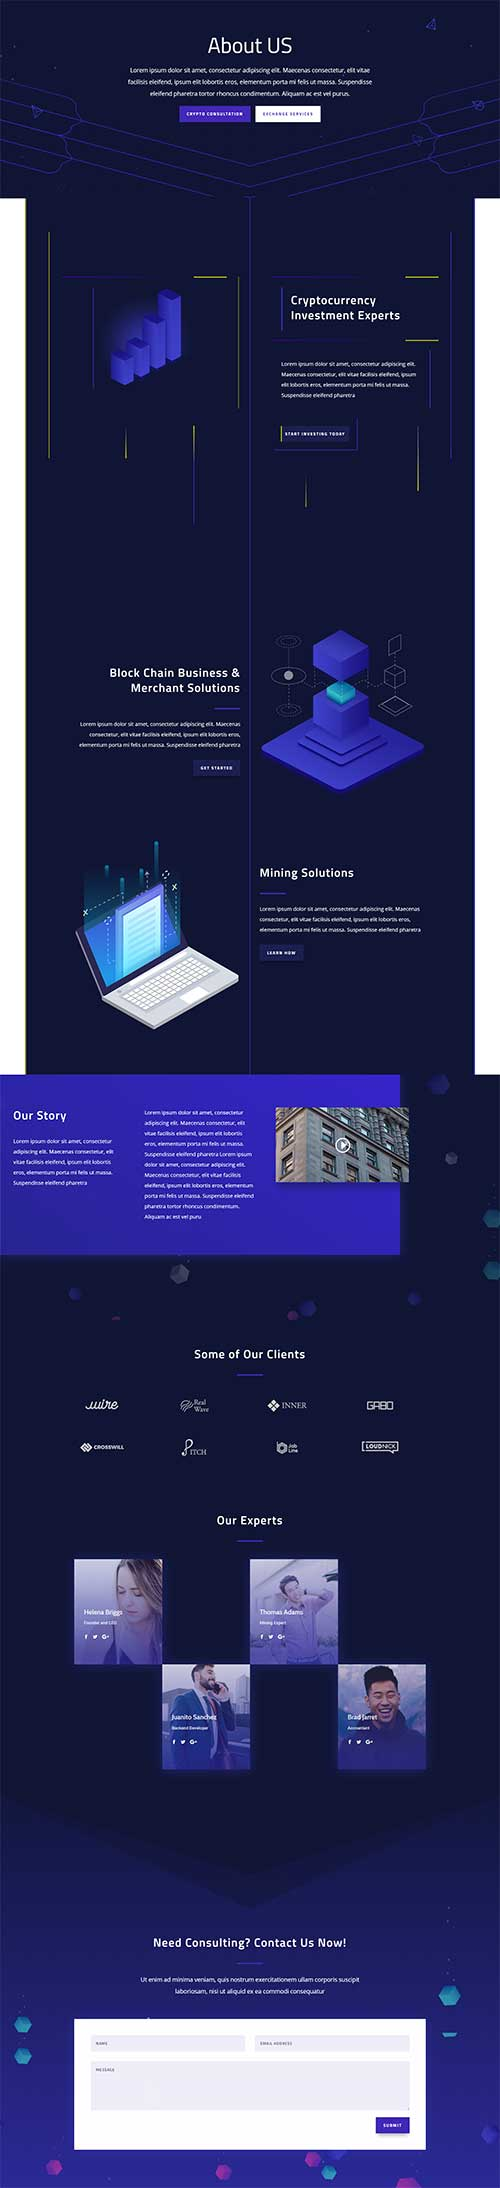 divi abstract lines layout download